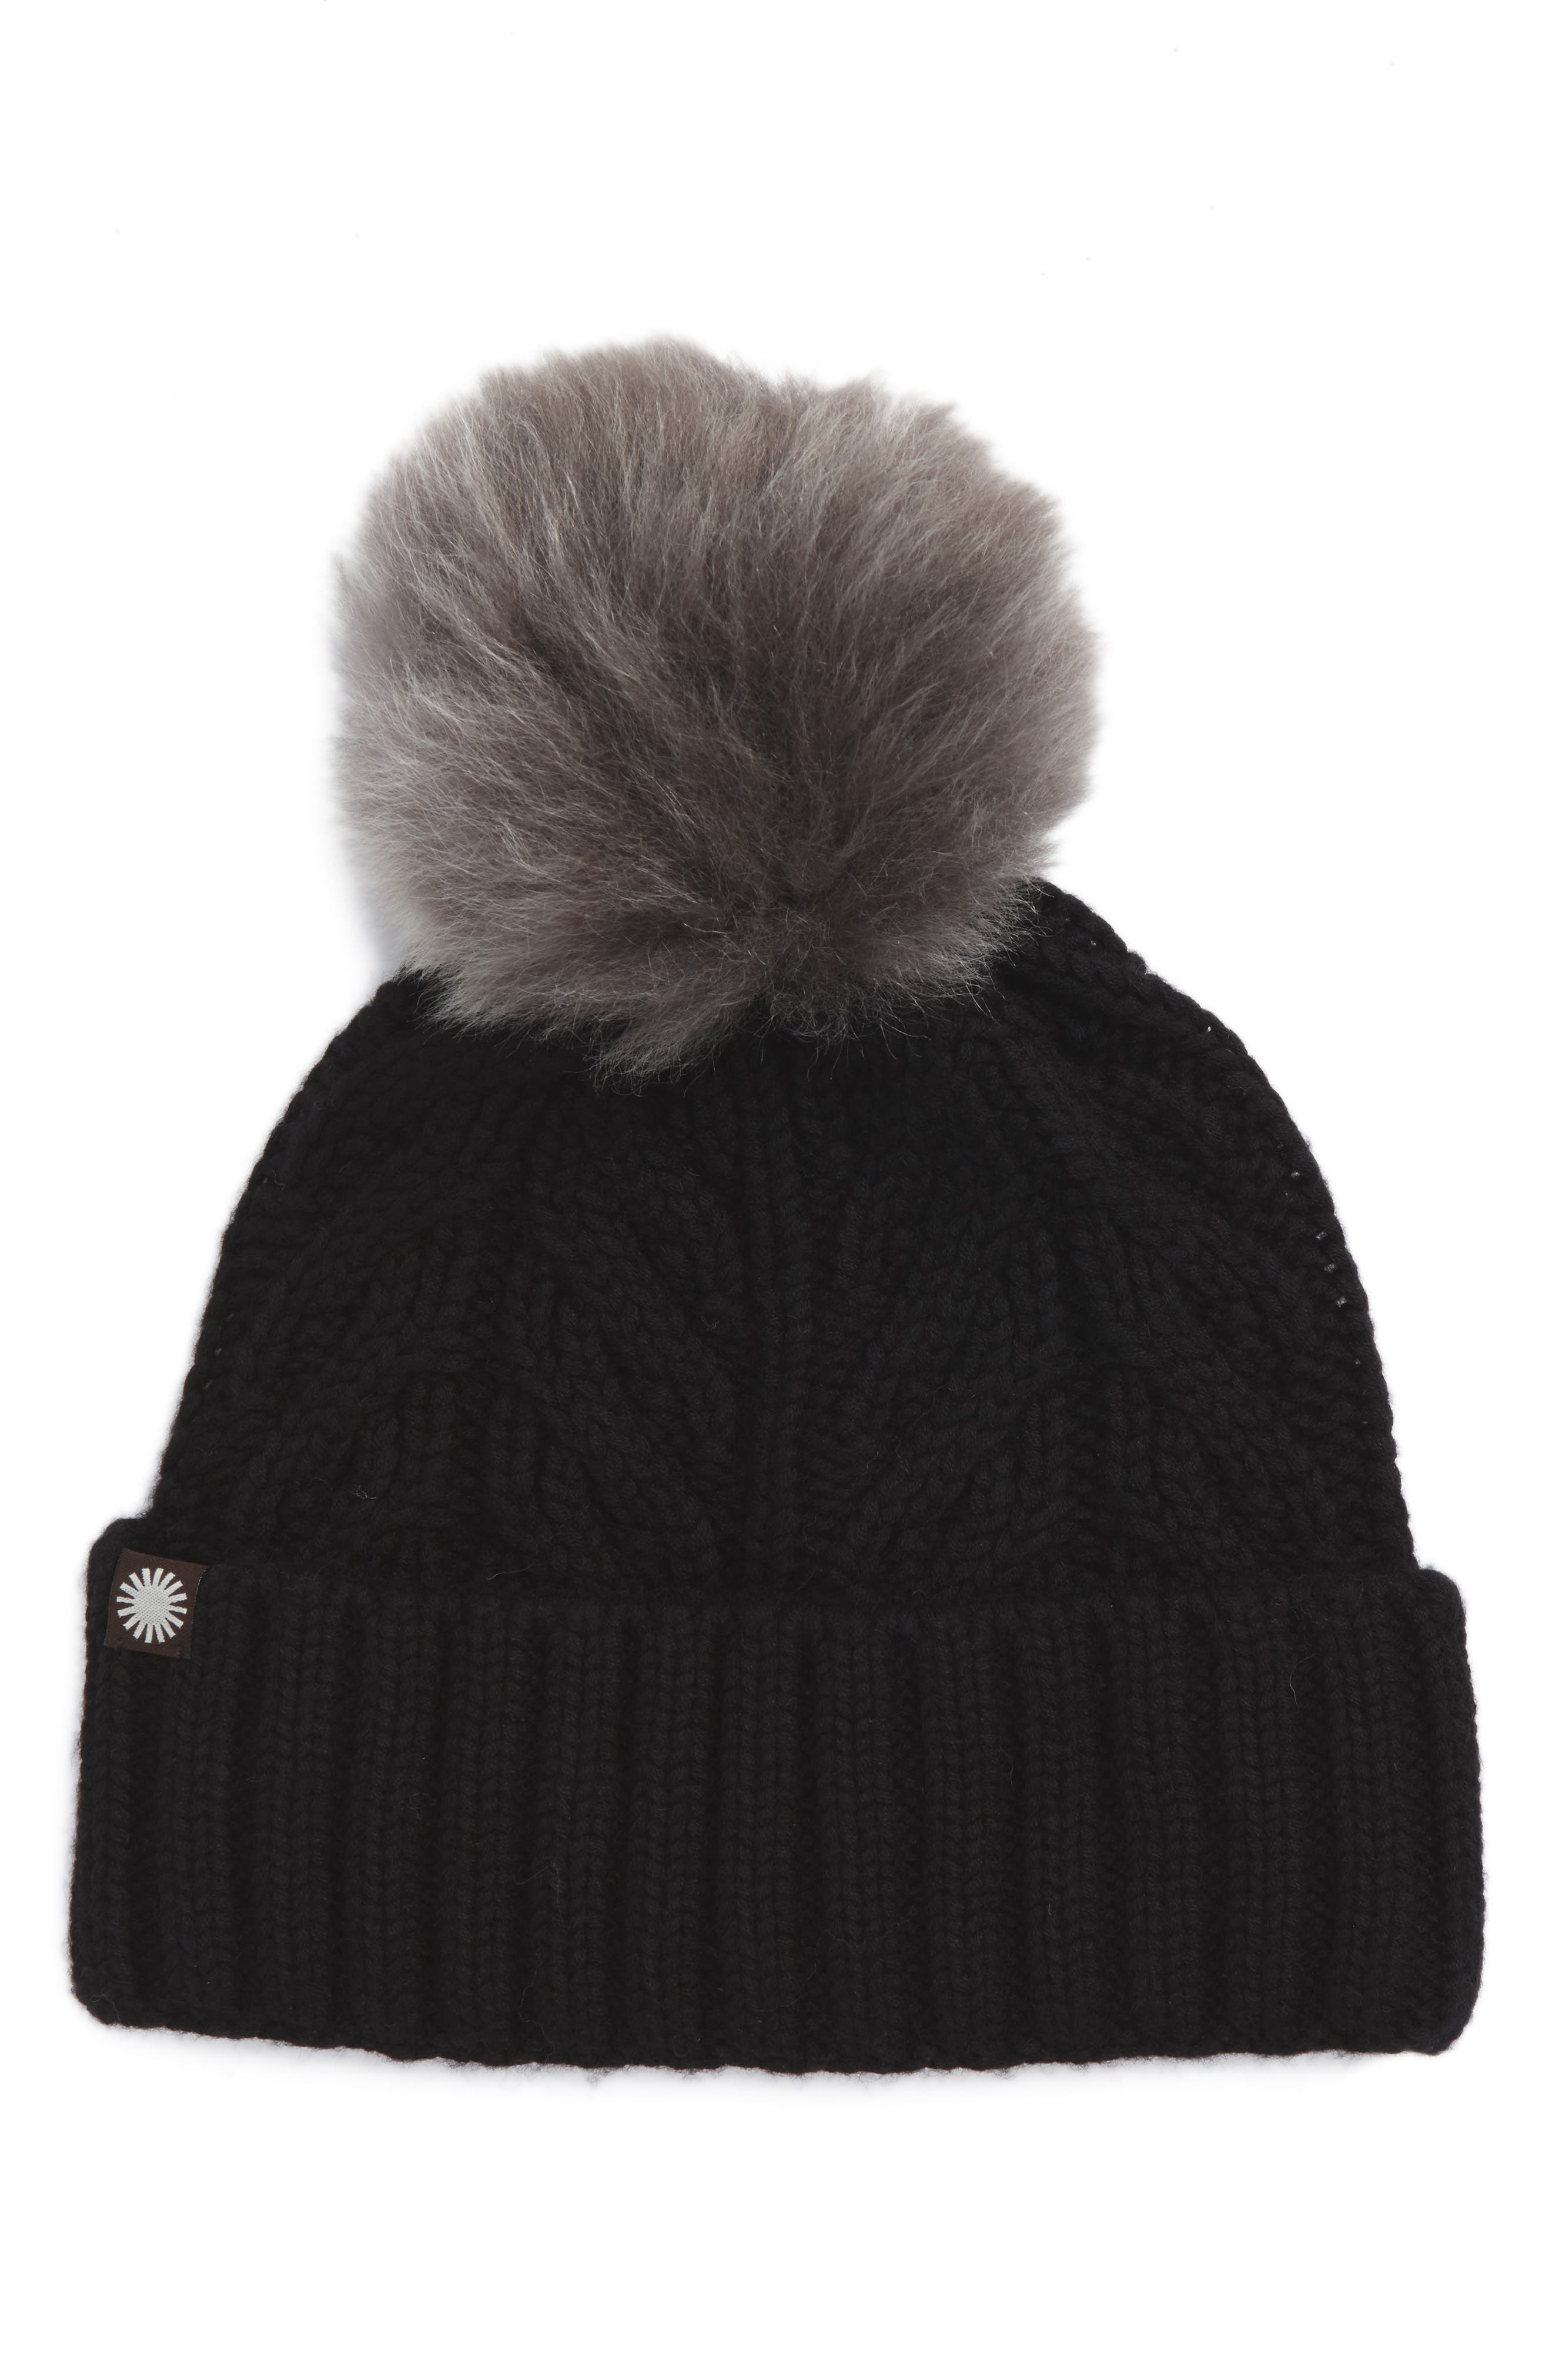 UGG<sup>®</sup> Cable Knit Cuff Hat with Genuine Shearling Pom,                             Main thumbnail 1, color,                             003